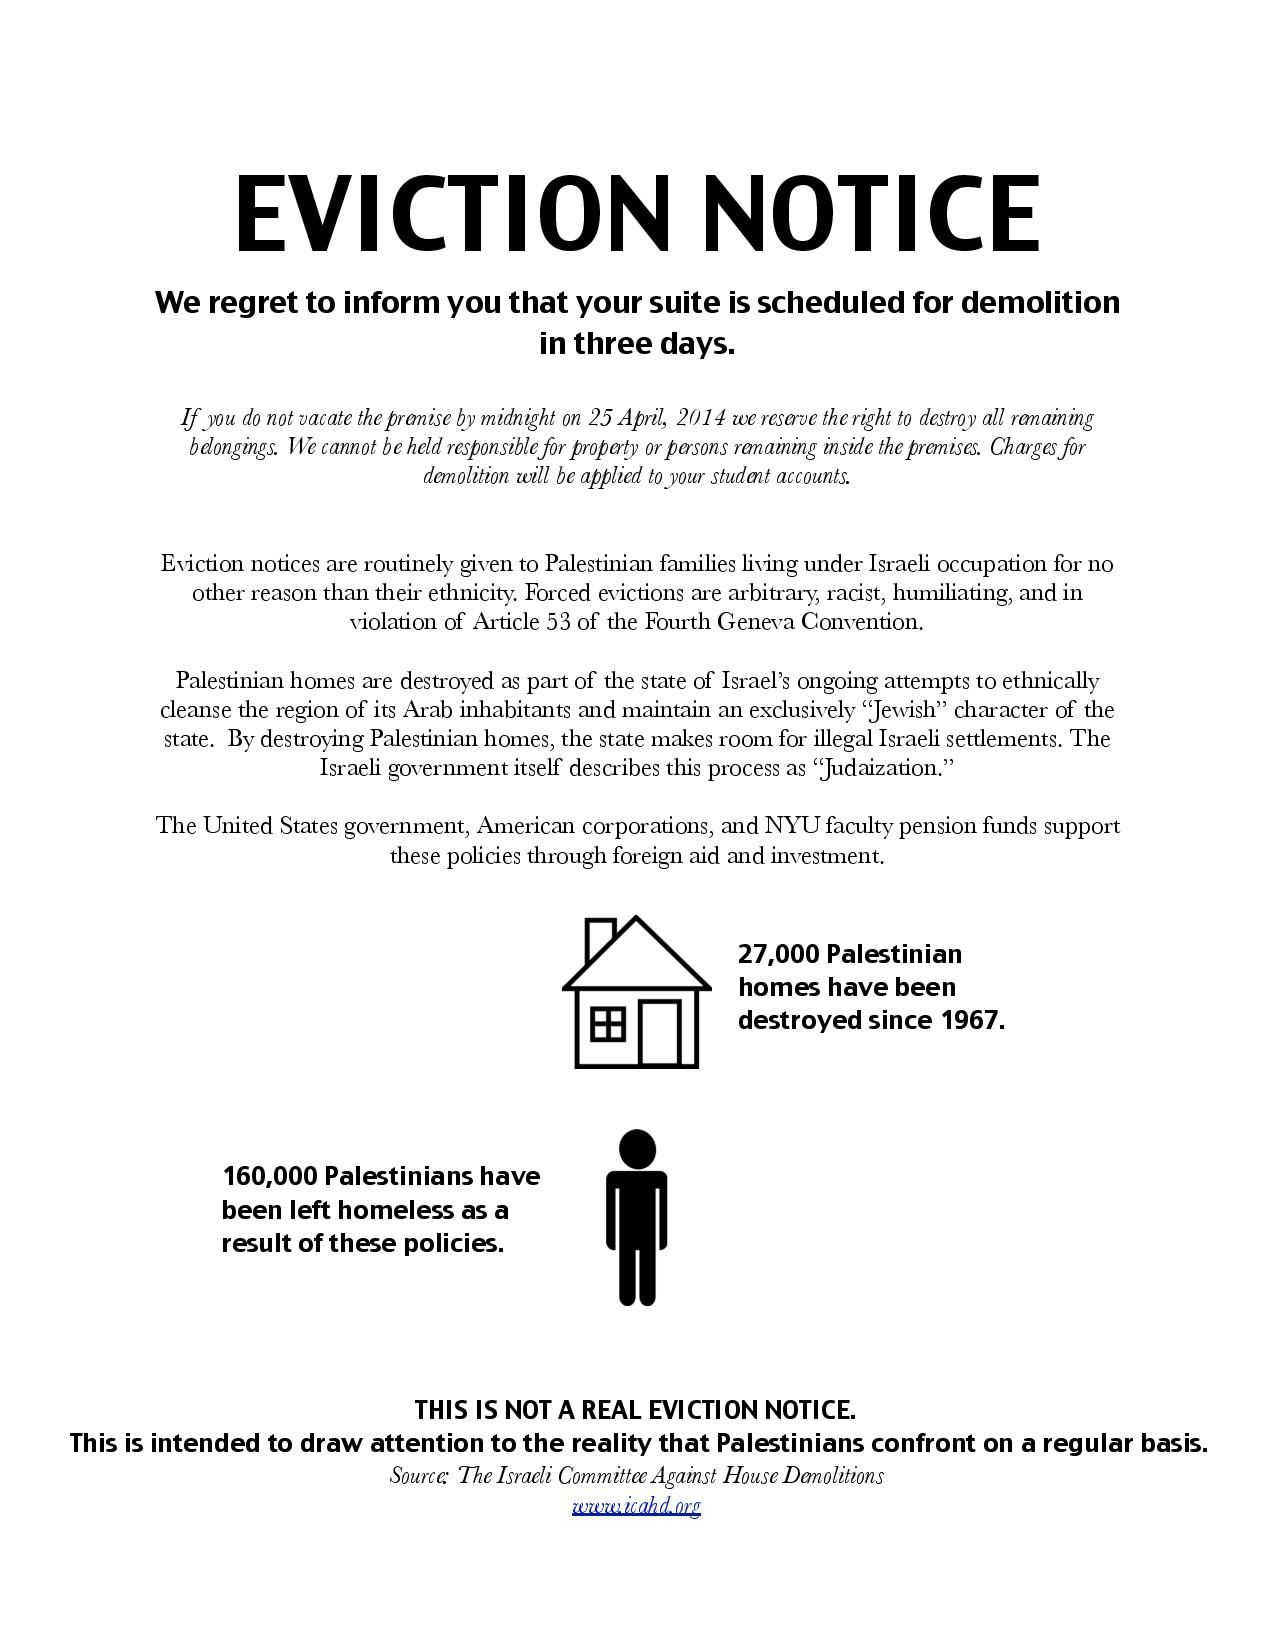 Statement Regarding Nyu SjpS Mock Eviction Notice Action  Nyu